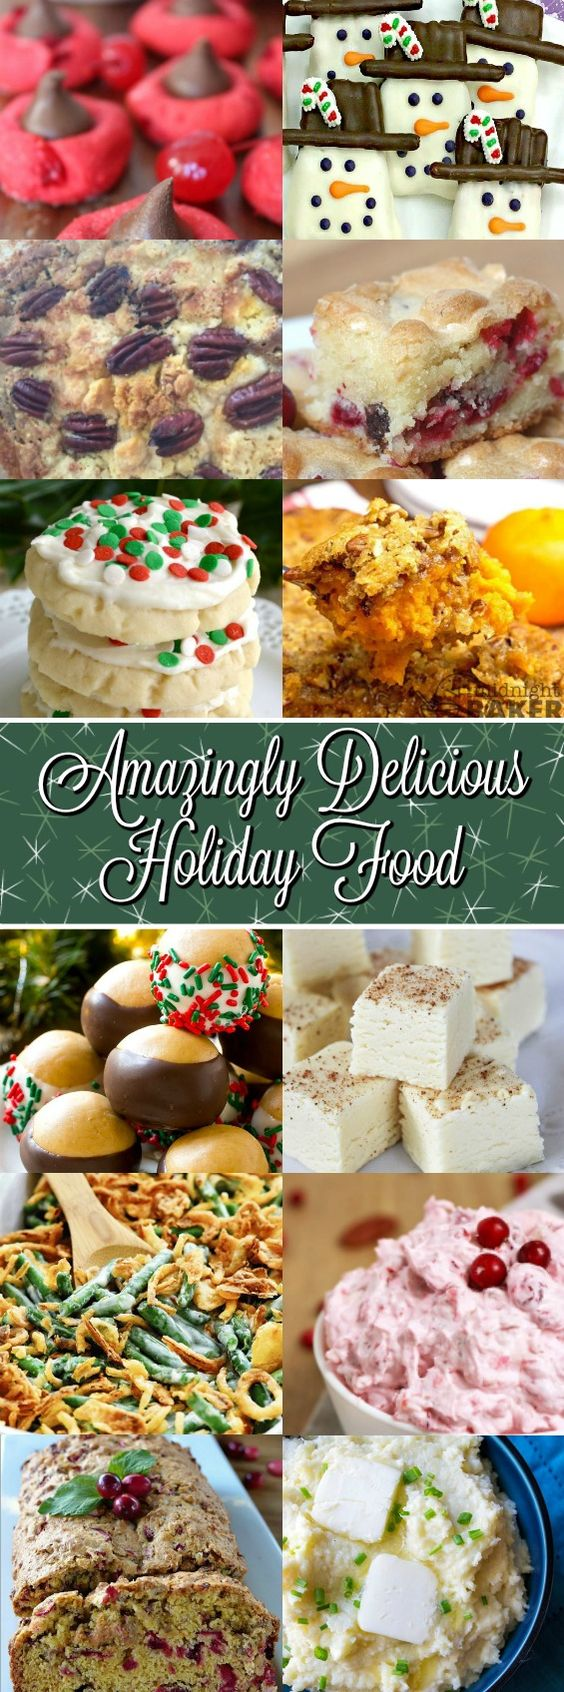 Amazingly Delicious Holiday Food - The Christmas Season is here and I don't know about you but I am always looking for a delicious new appetizer, cookie, bread, dessert, main dish, cocktail recipe or anything else I can get my hands on.